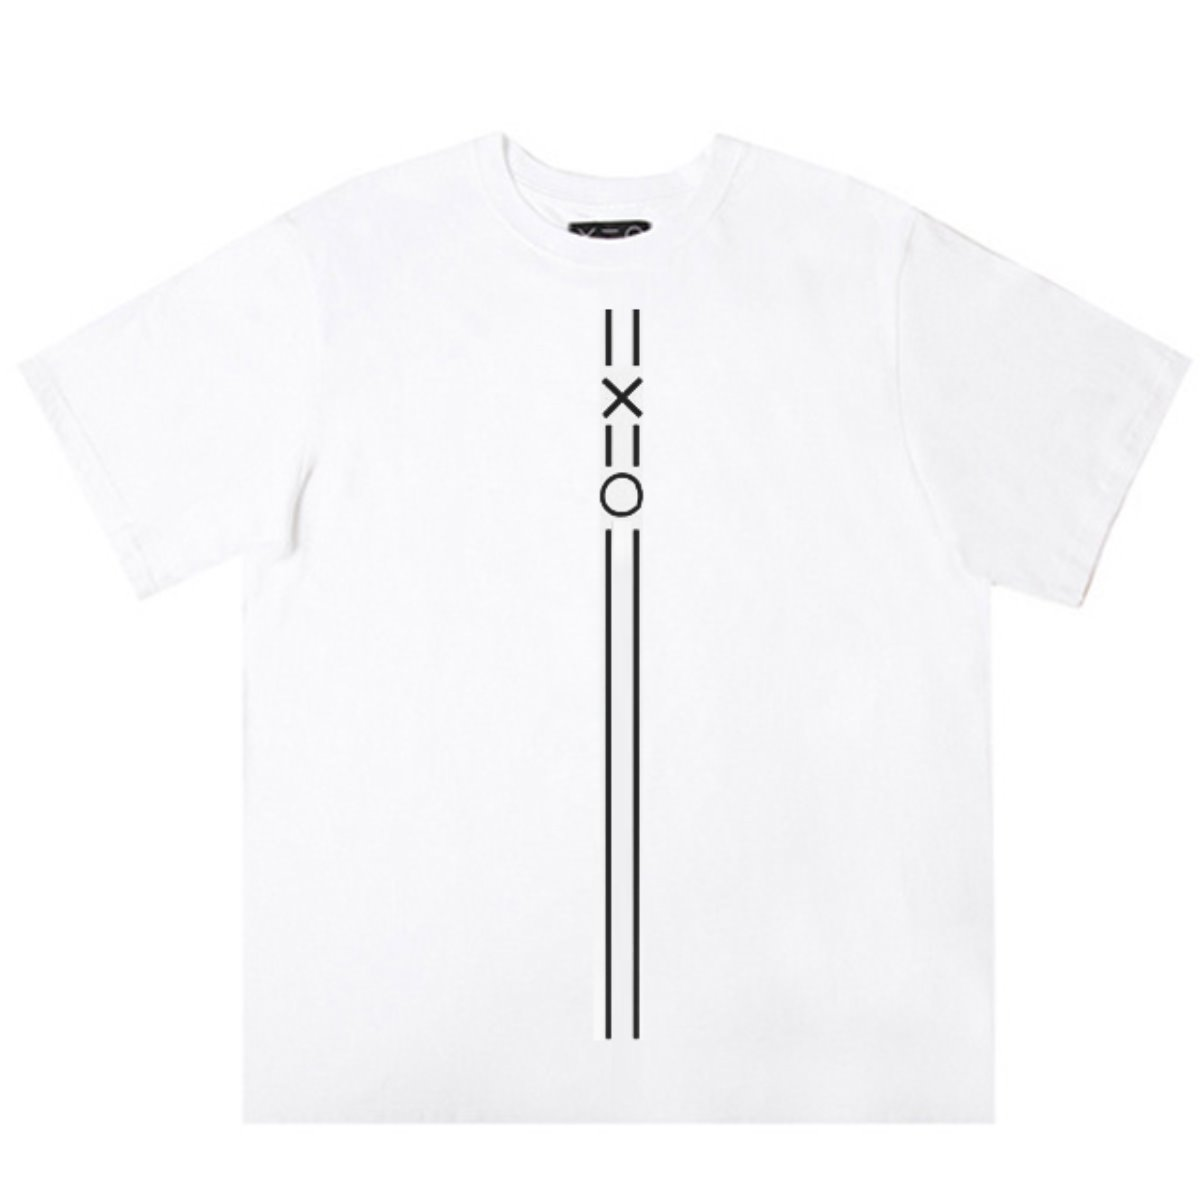 WHITE DOZOH BLACK EQUAL V LINE&LOGO T-SHIRTS 2